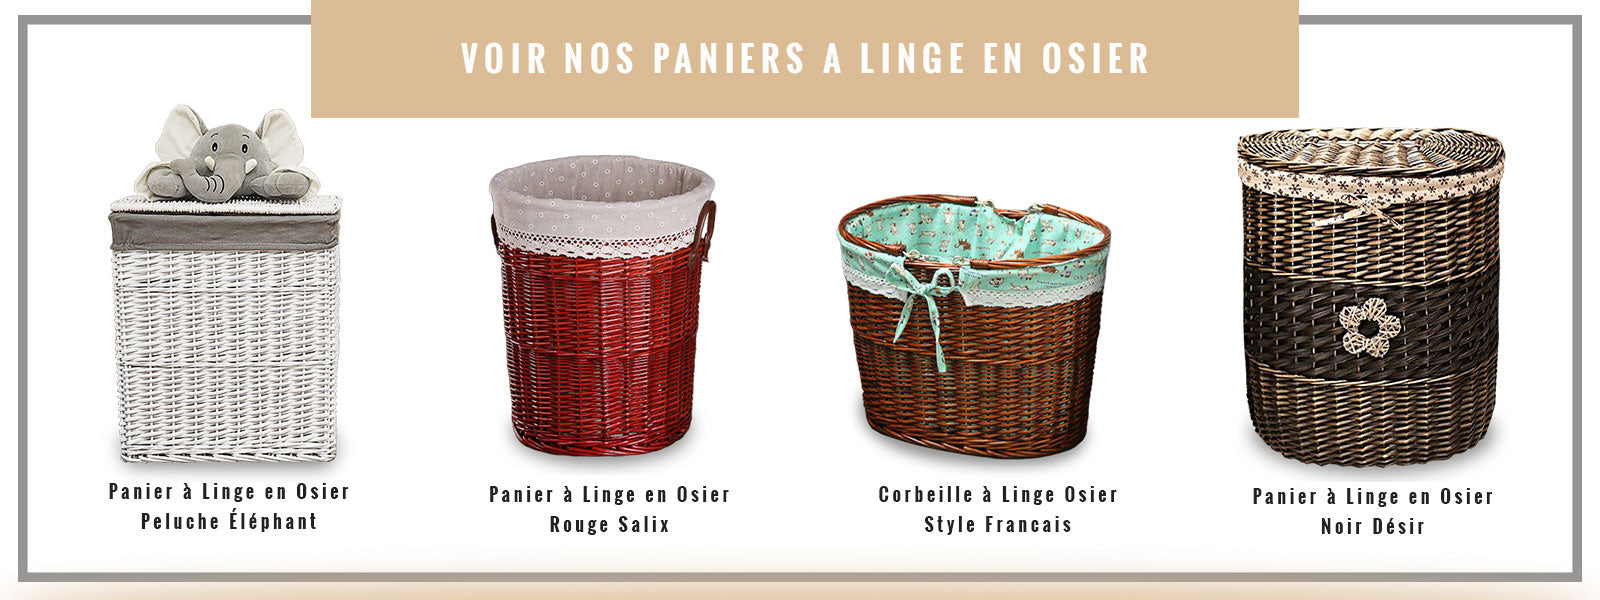 bannière de collection paniers à linge en osier